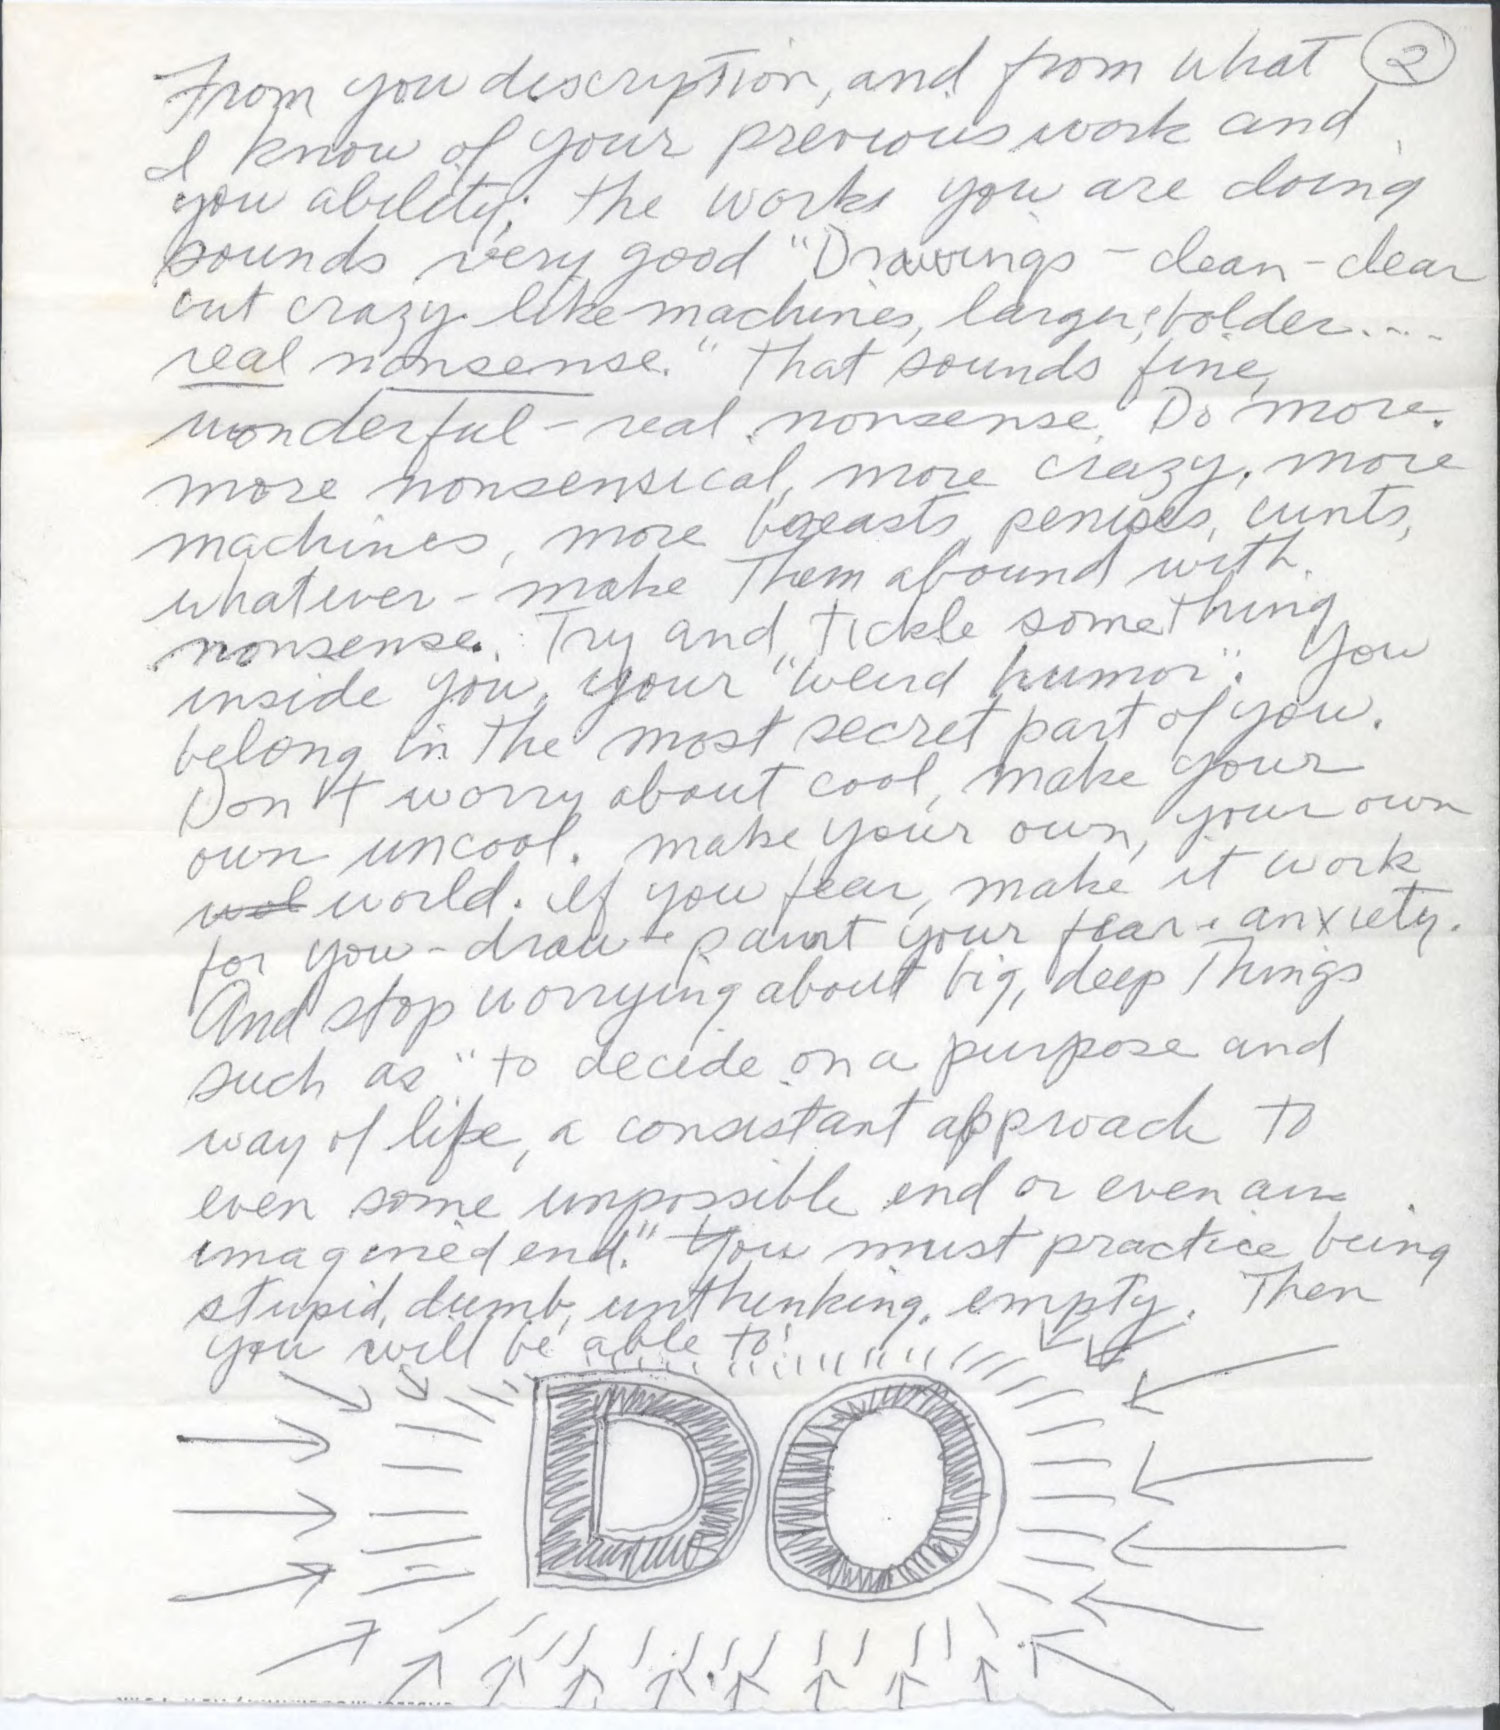 Sol-LeWitts-Letter-to-Eva-Hesse